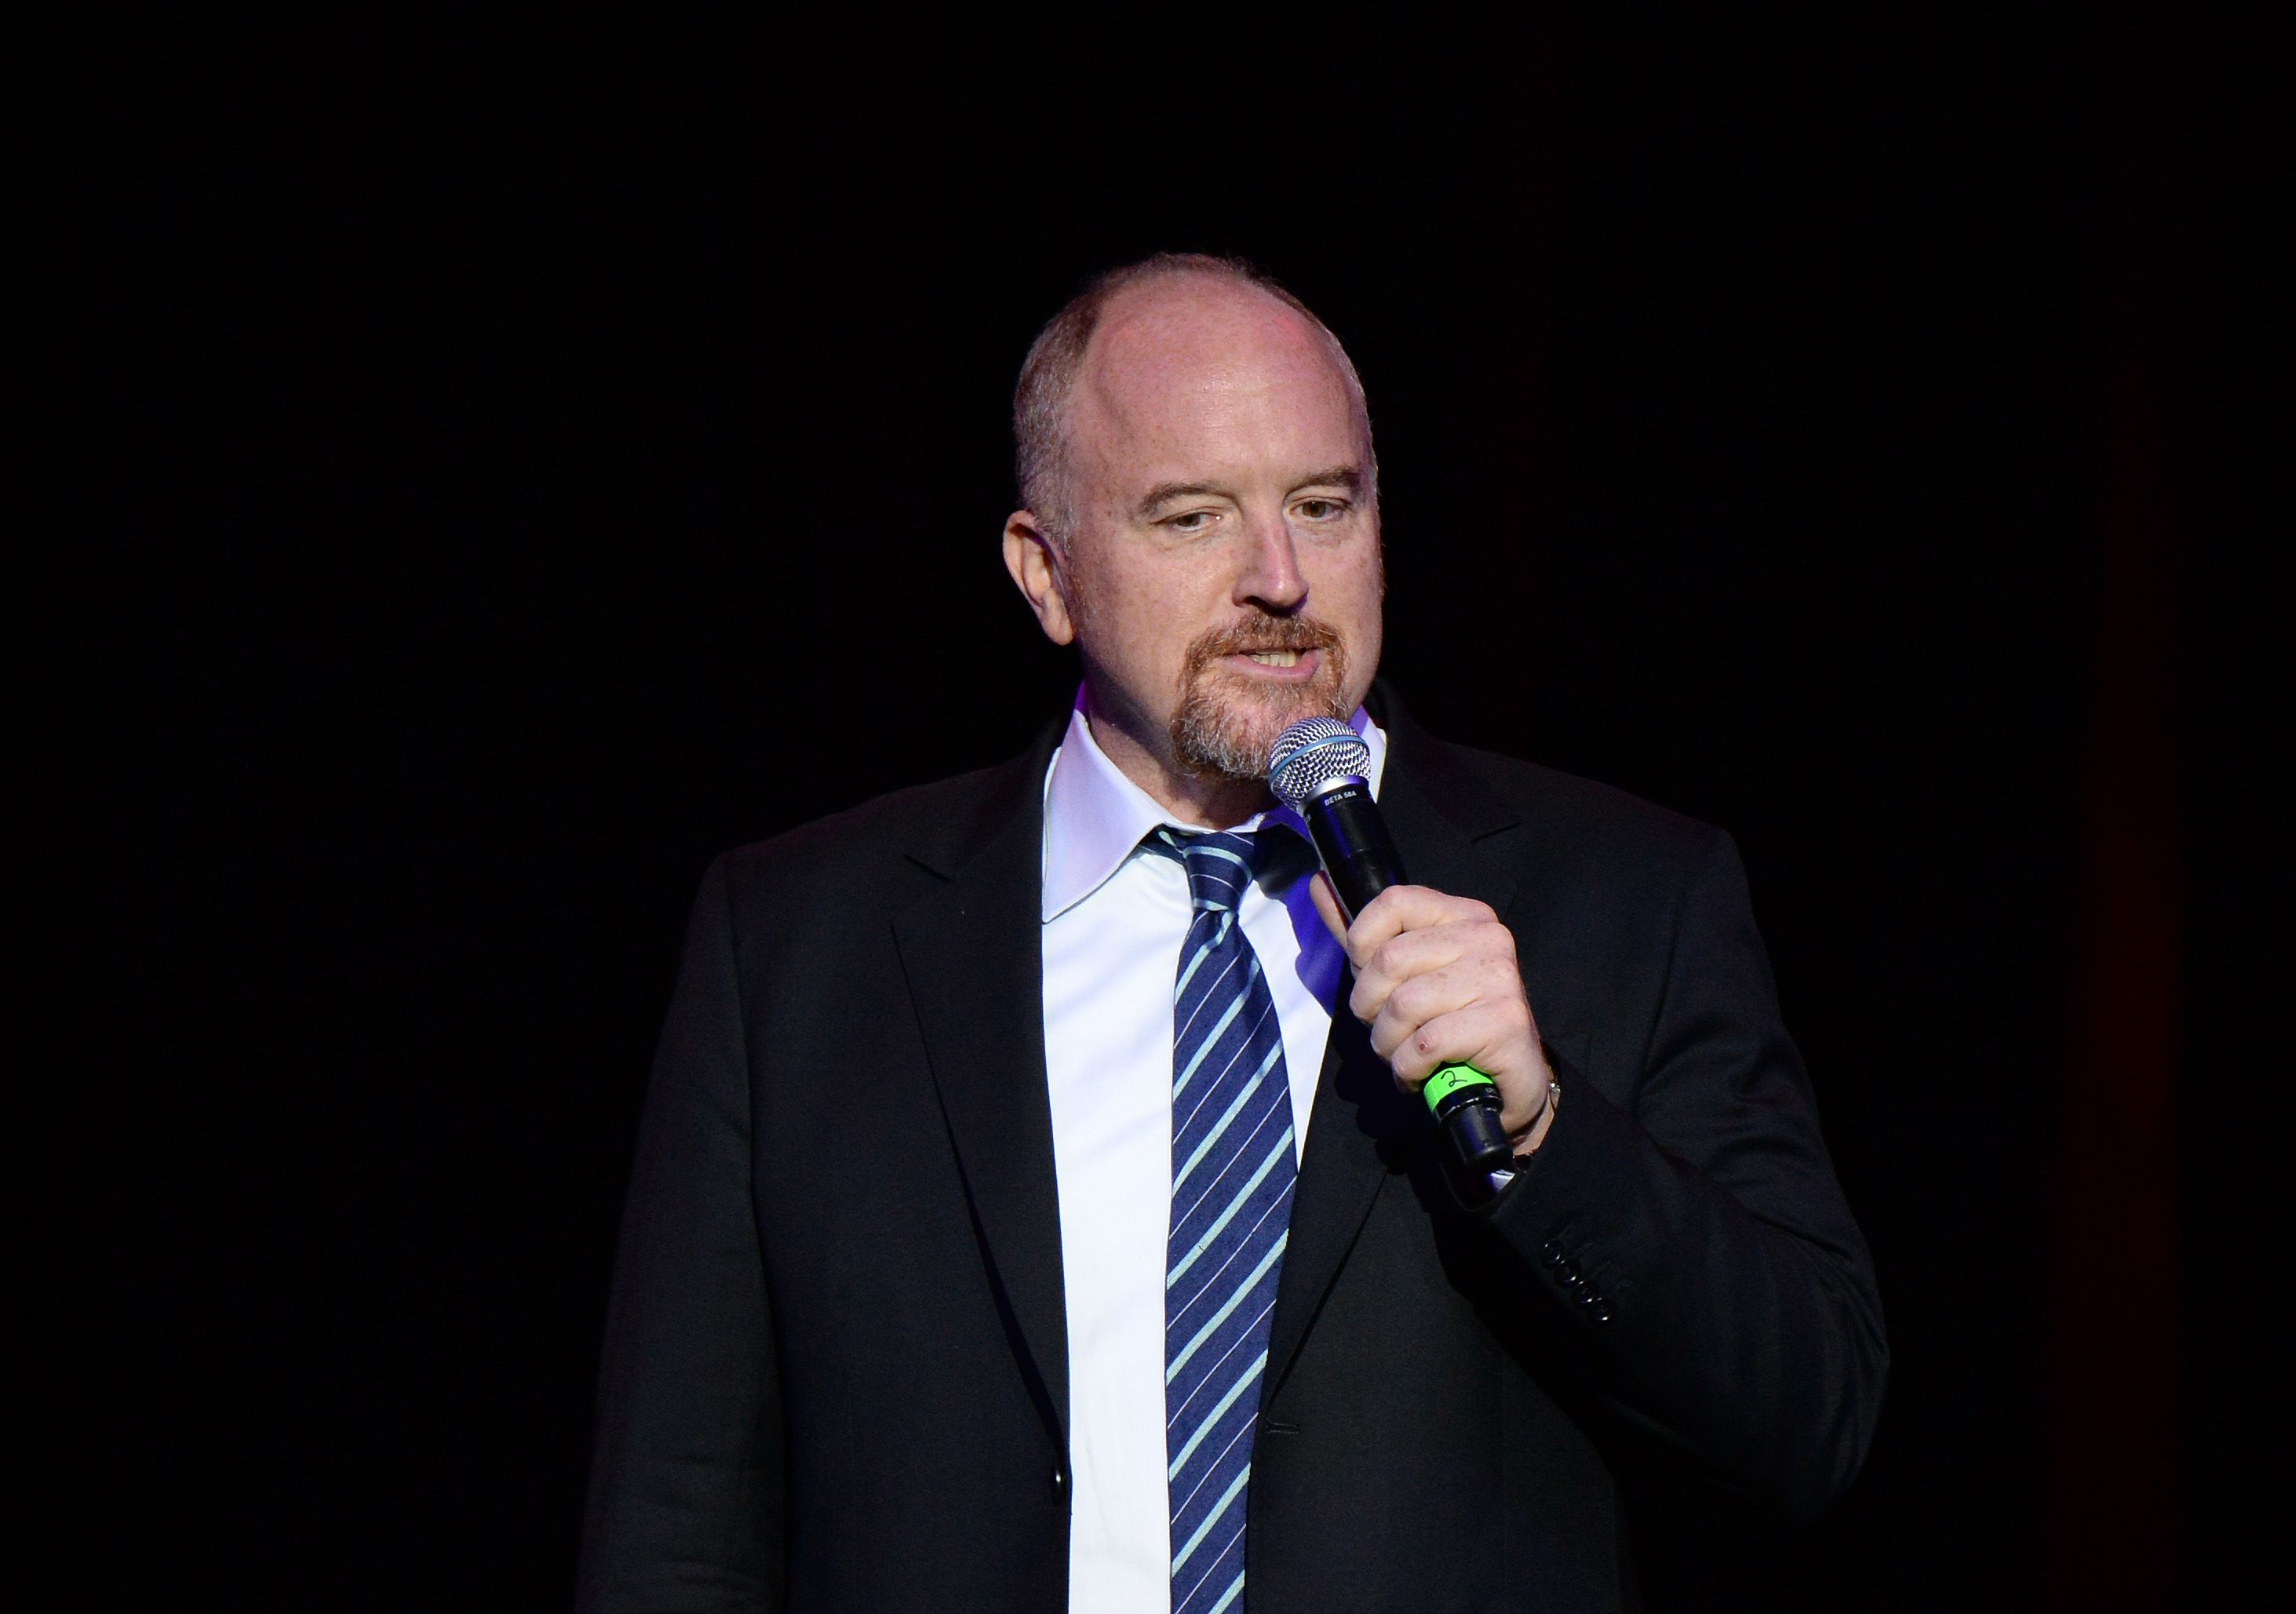 Watch Louis C.K video